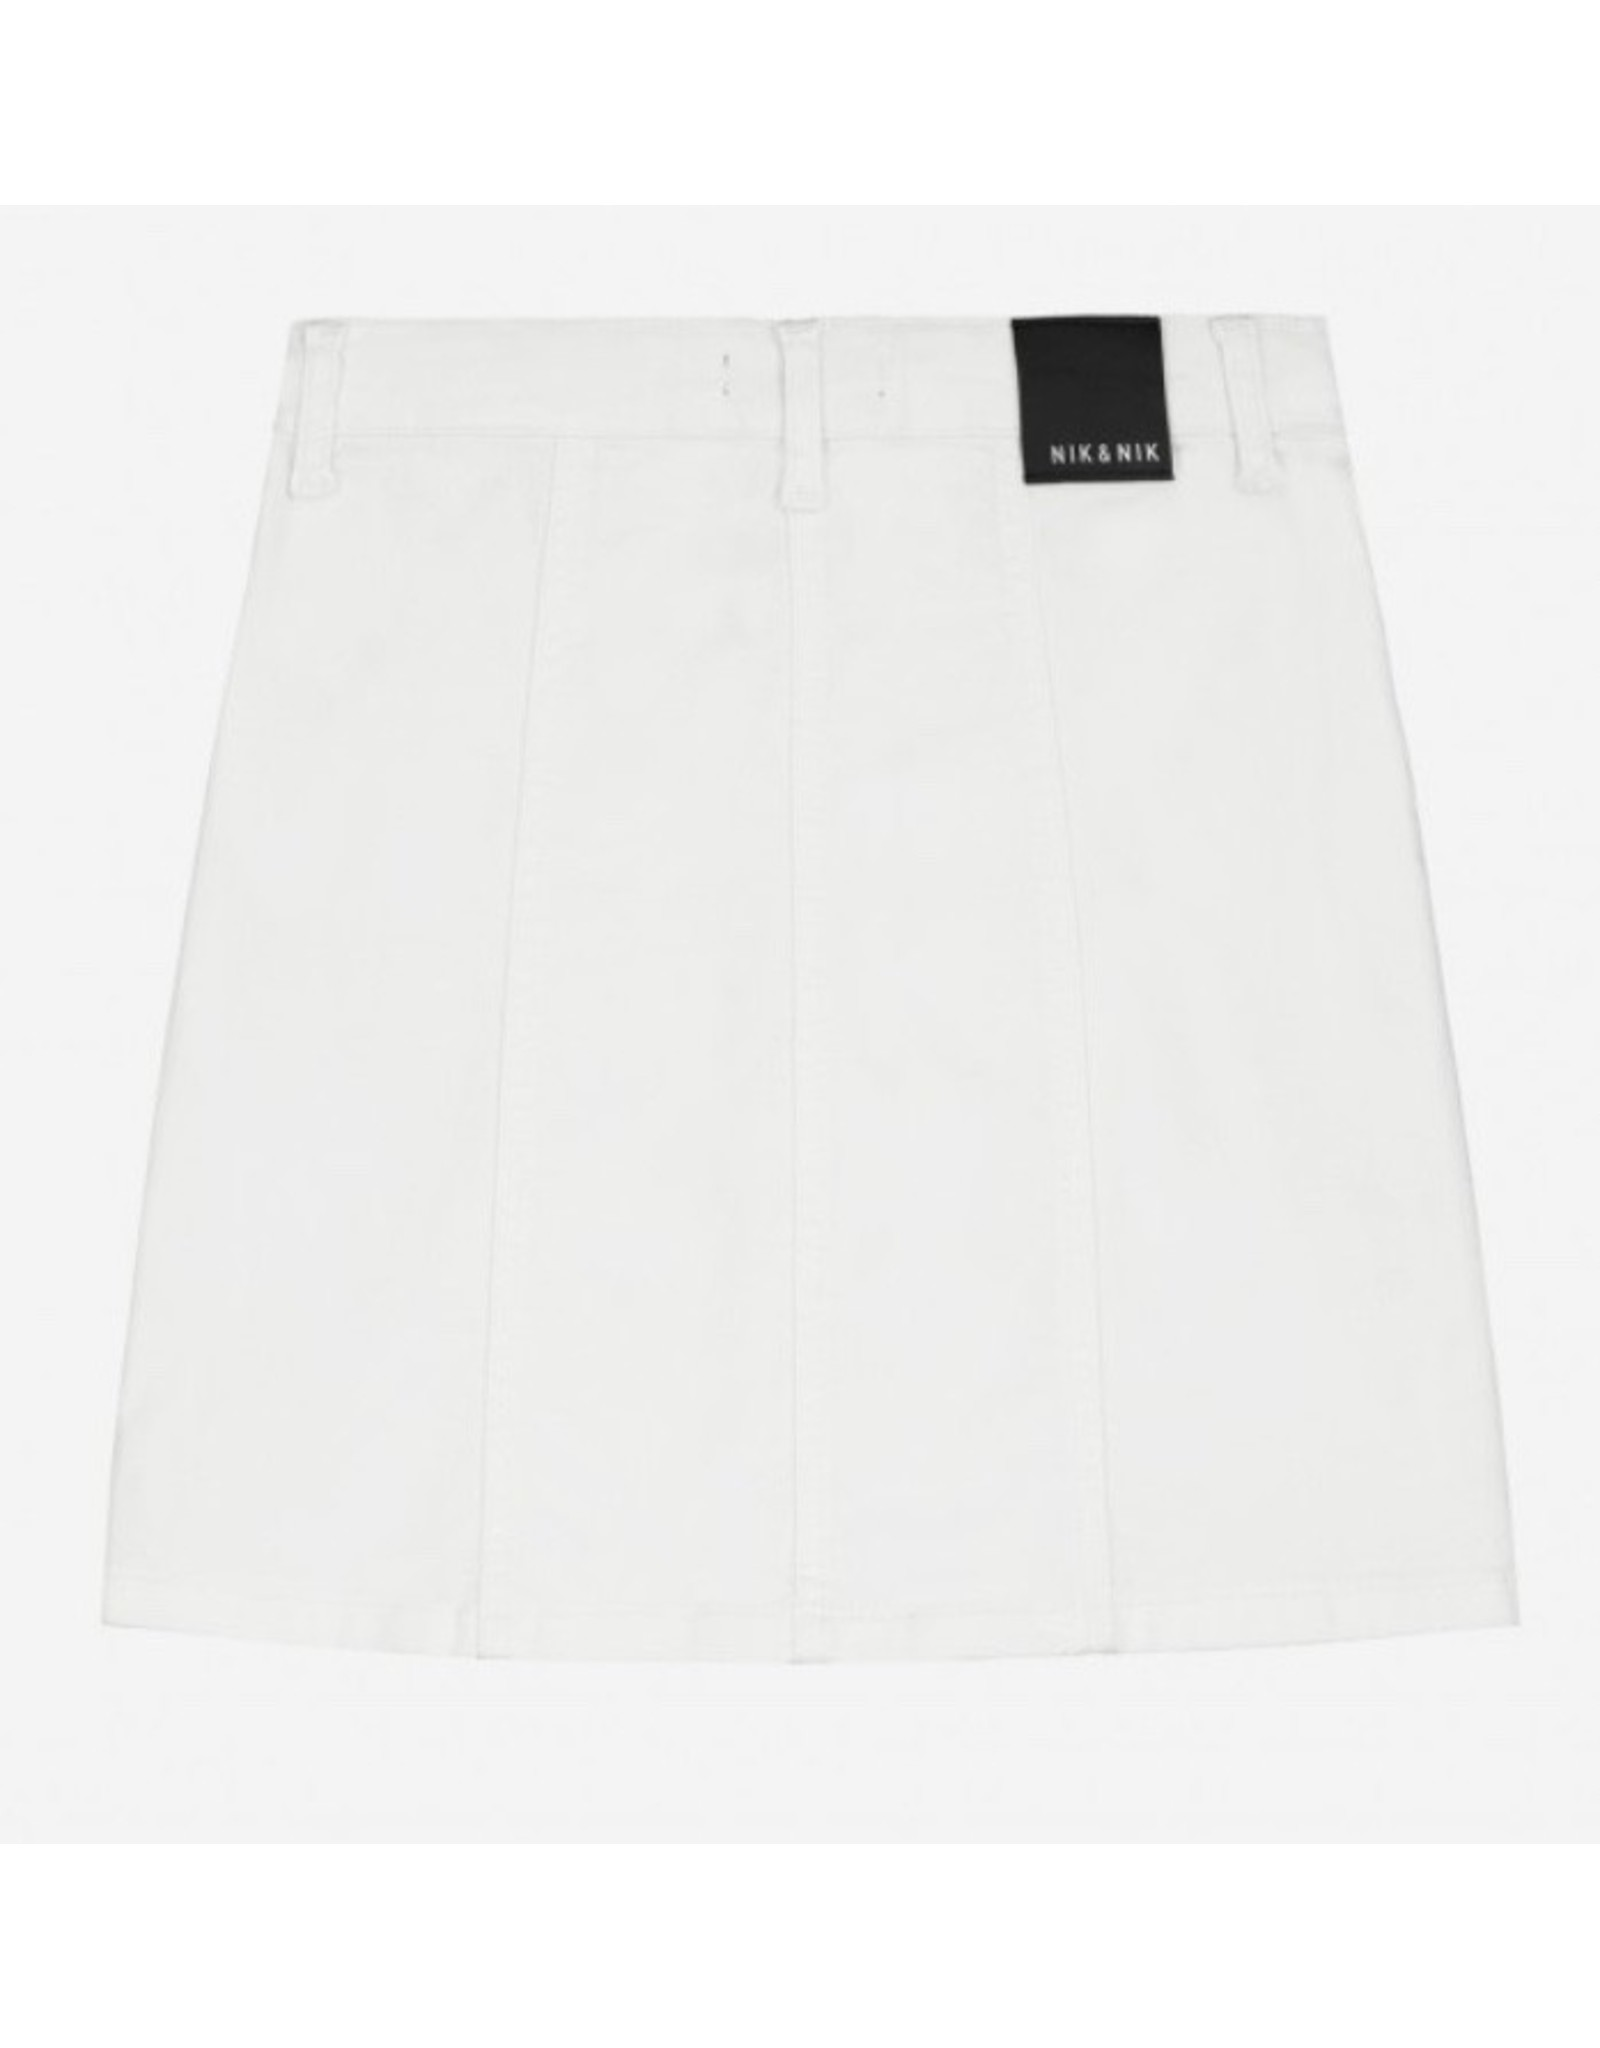 Nik & Nik Florijne  Denim Skirt